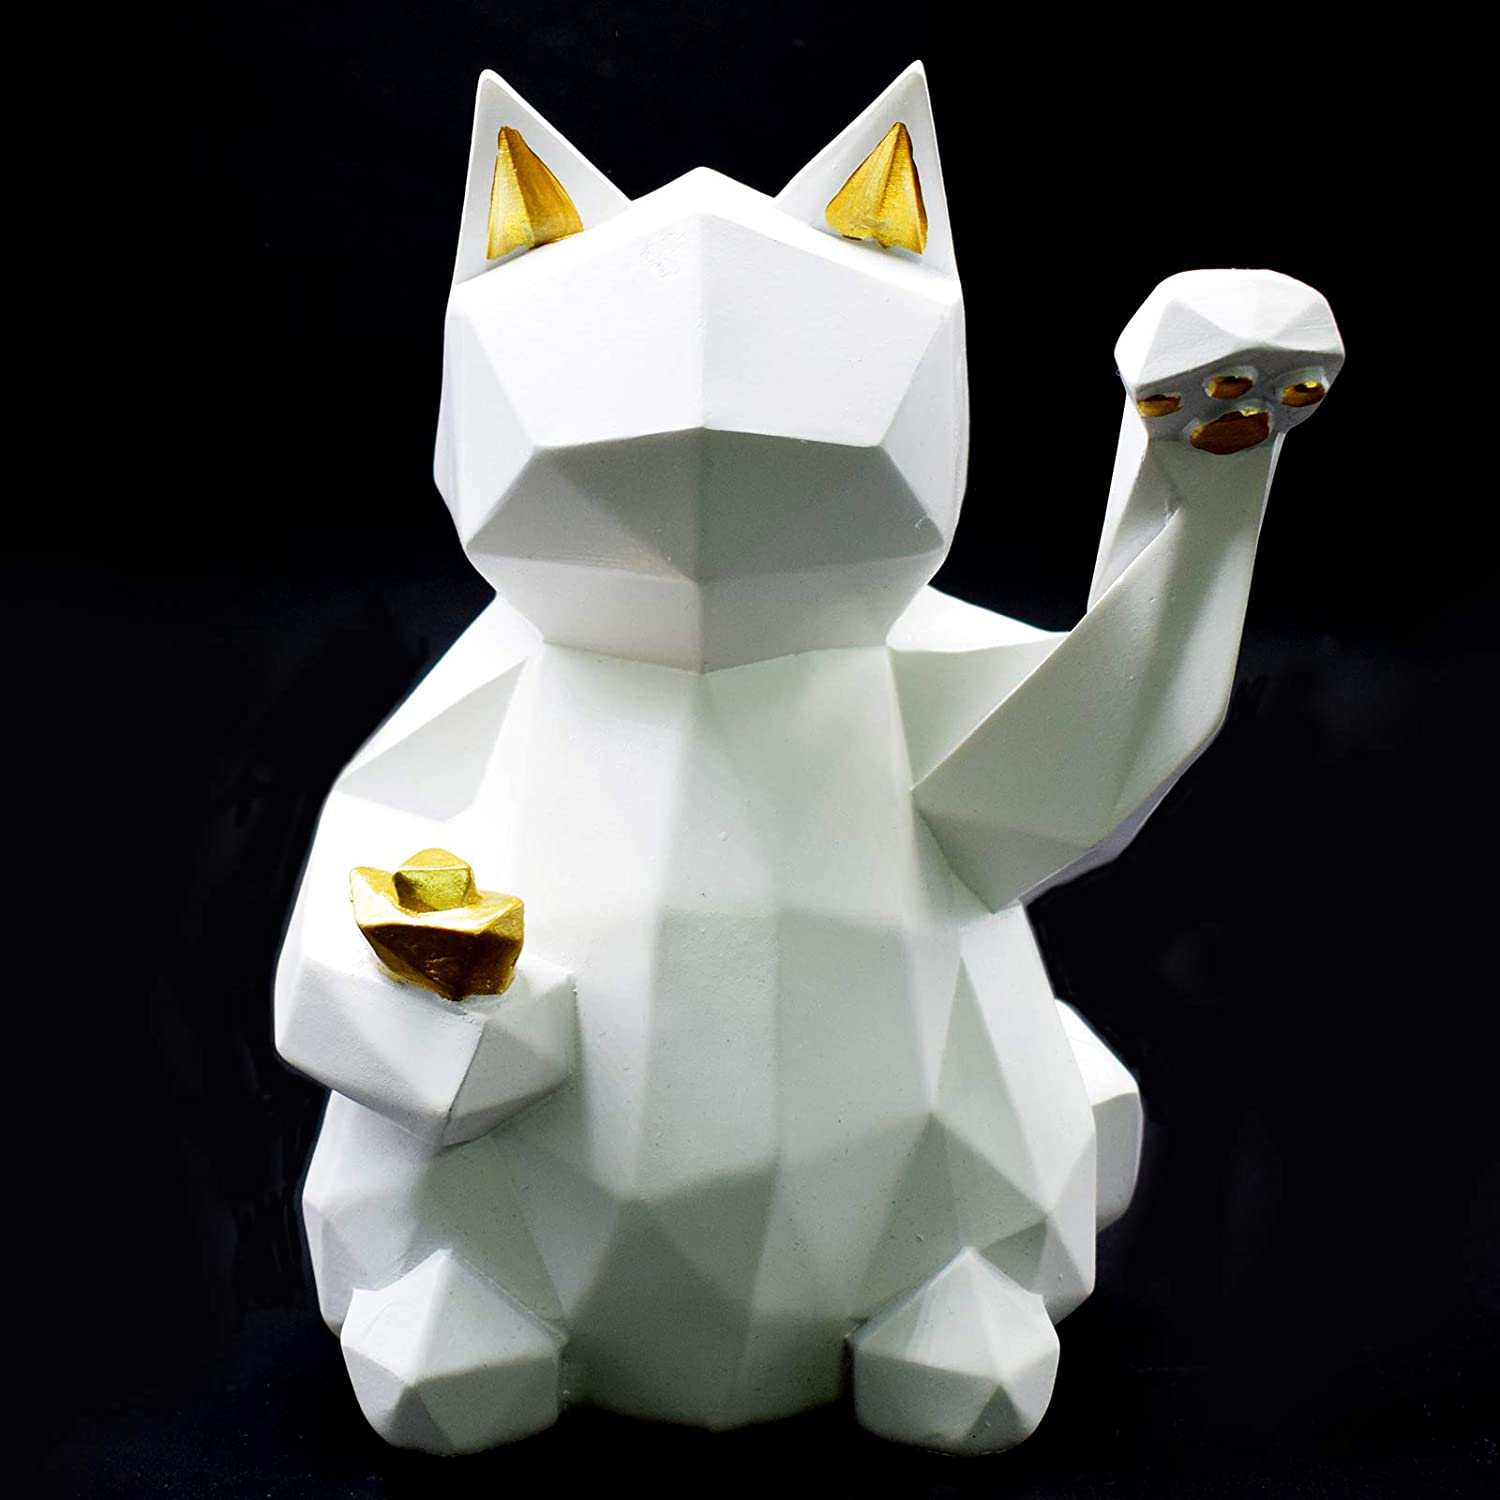 FUNSXBUG 7 Inch Art Money Lucky Cat Statue Sculpture Collectible Figurine, Gift for Business Opening,Feng Shui Home Decor Attract Wealth and Good Luck (White)